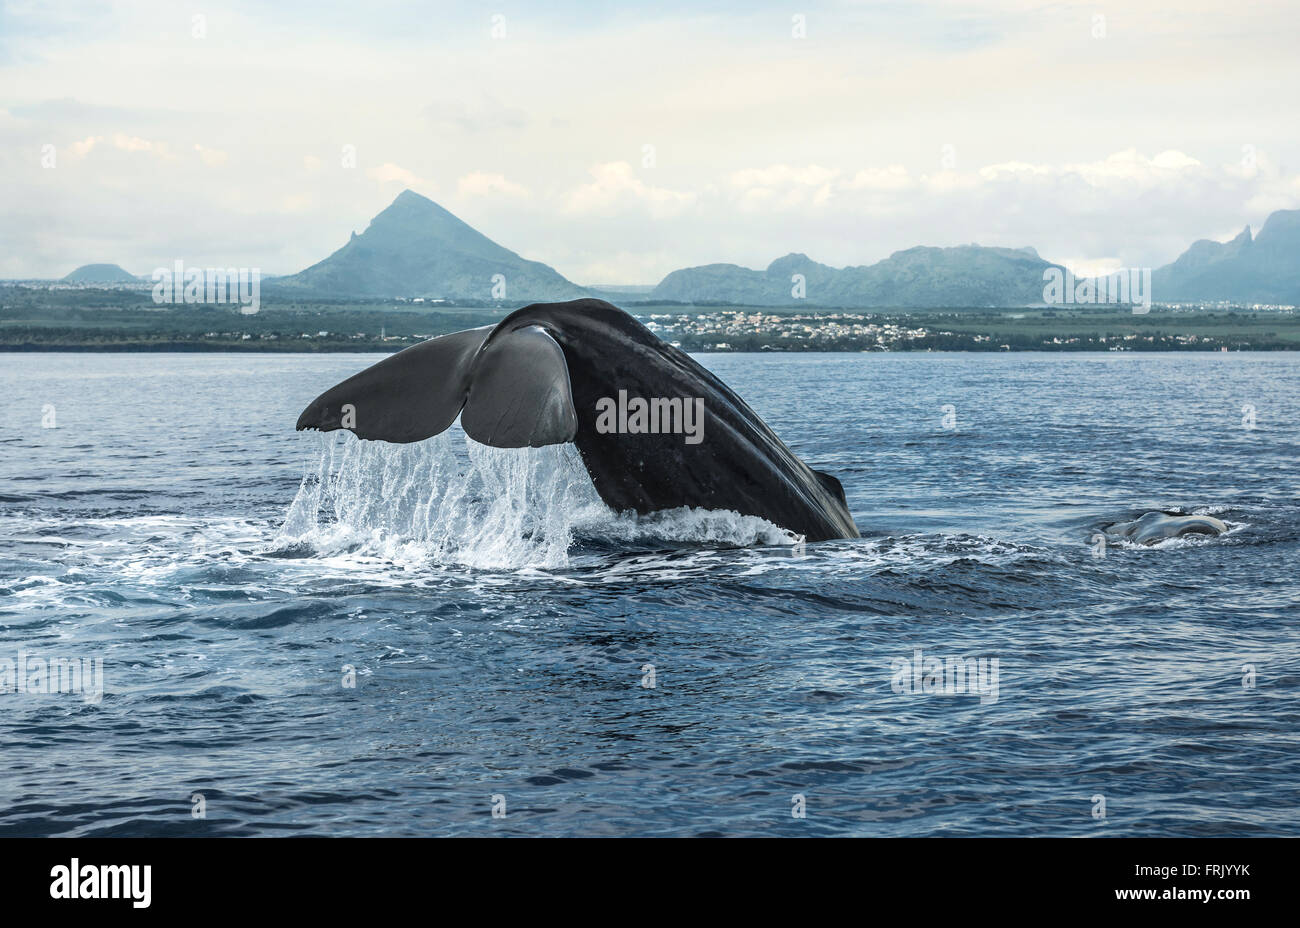 Whale watching, Mauritius - Stock Image